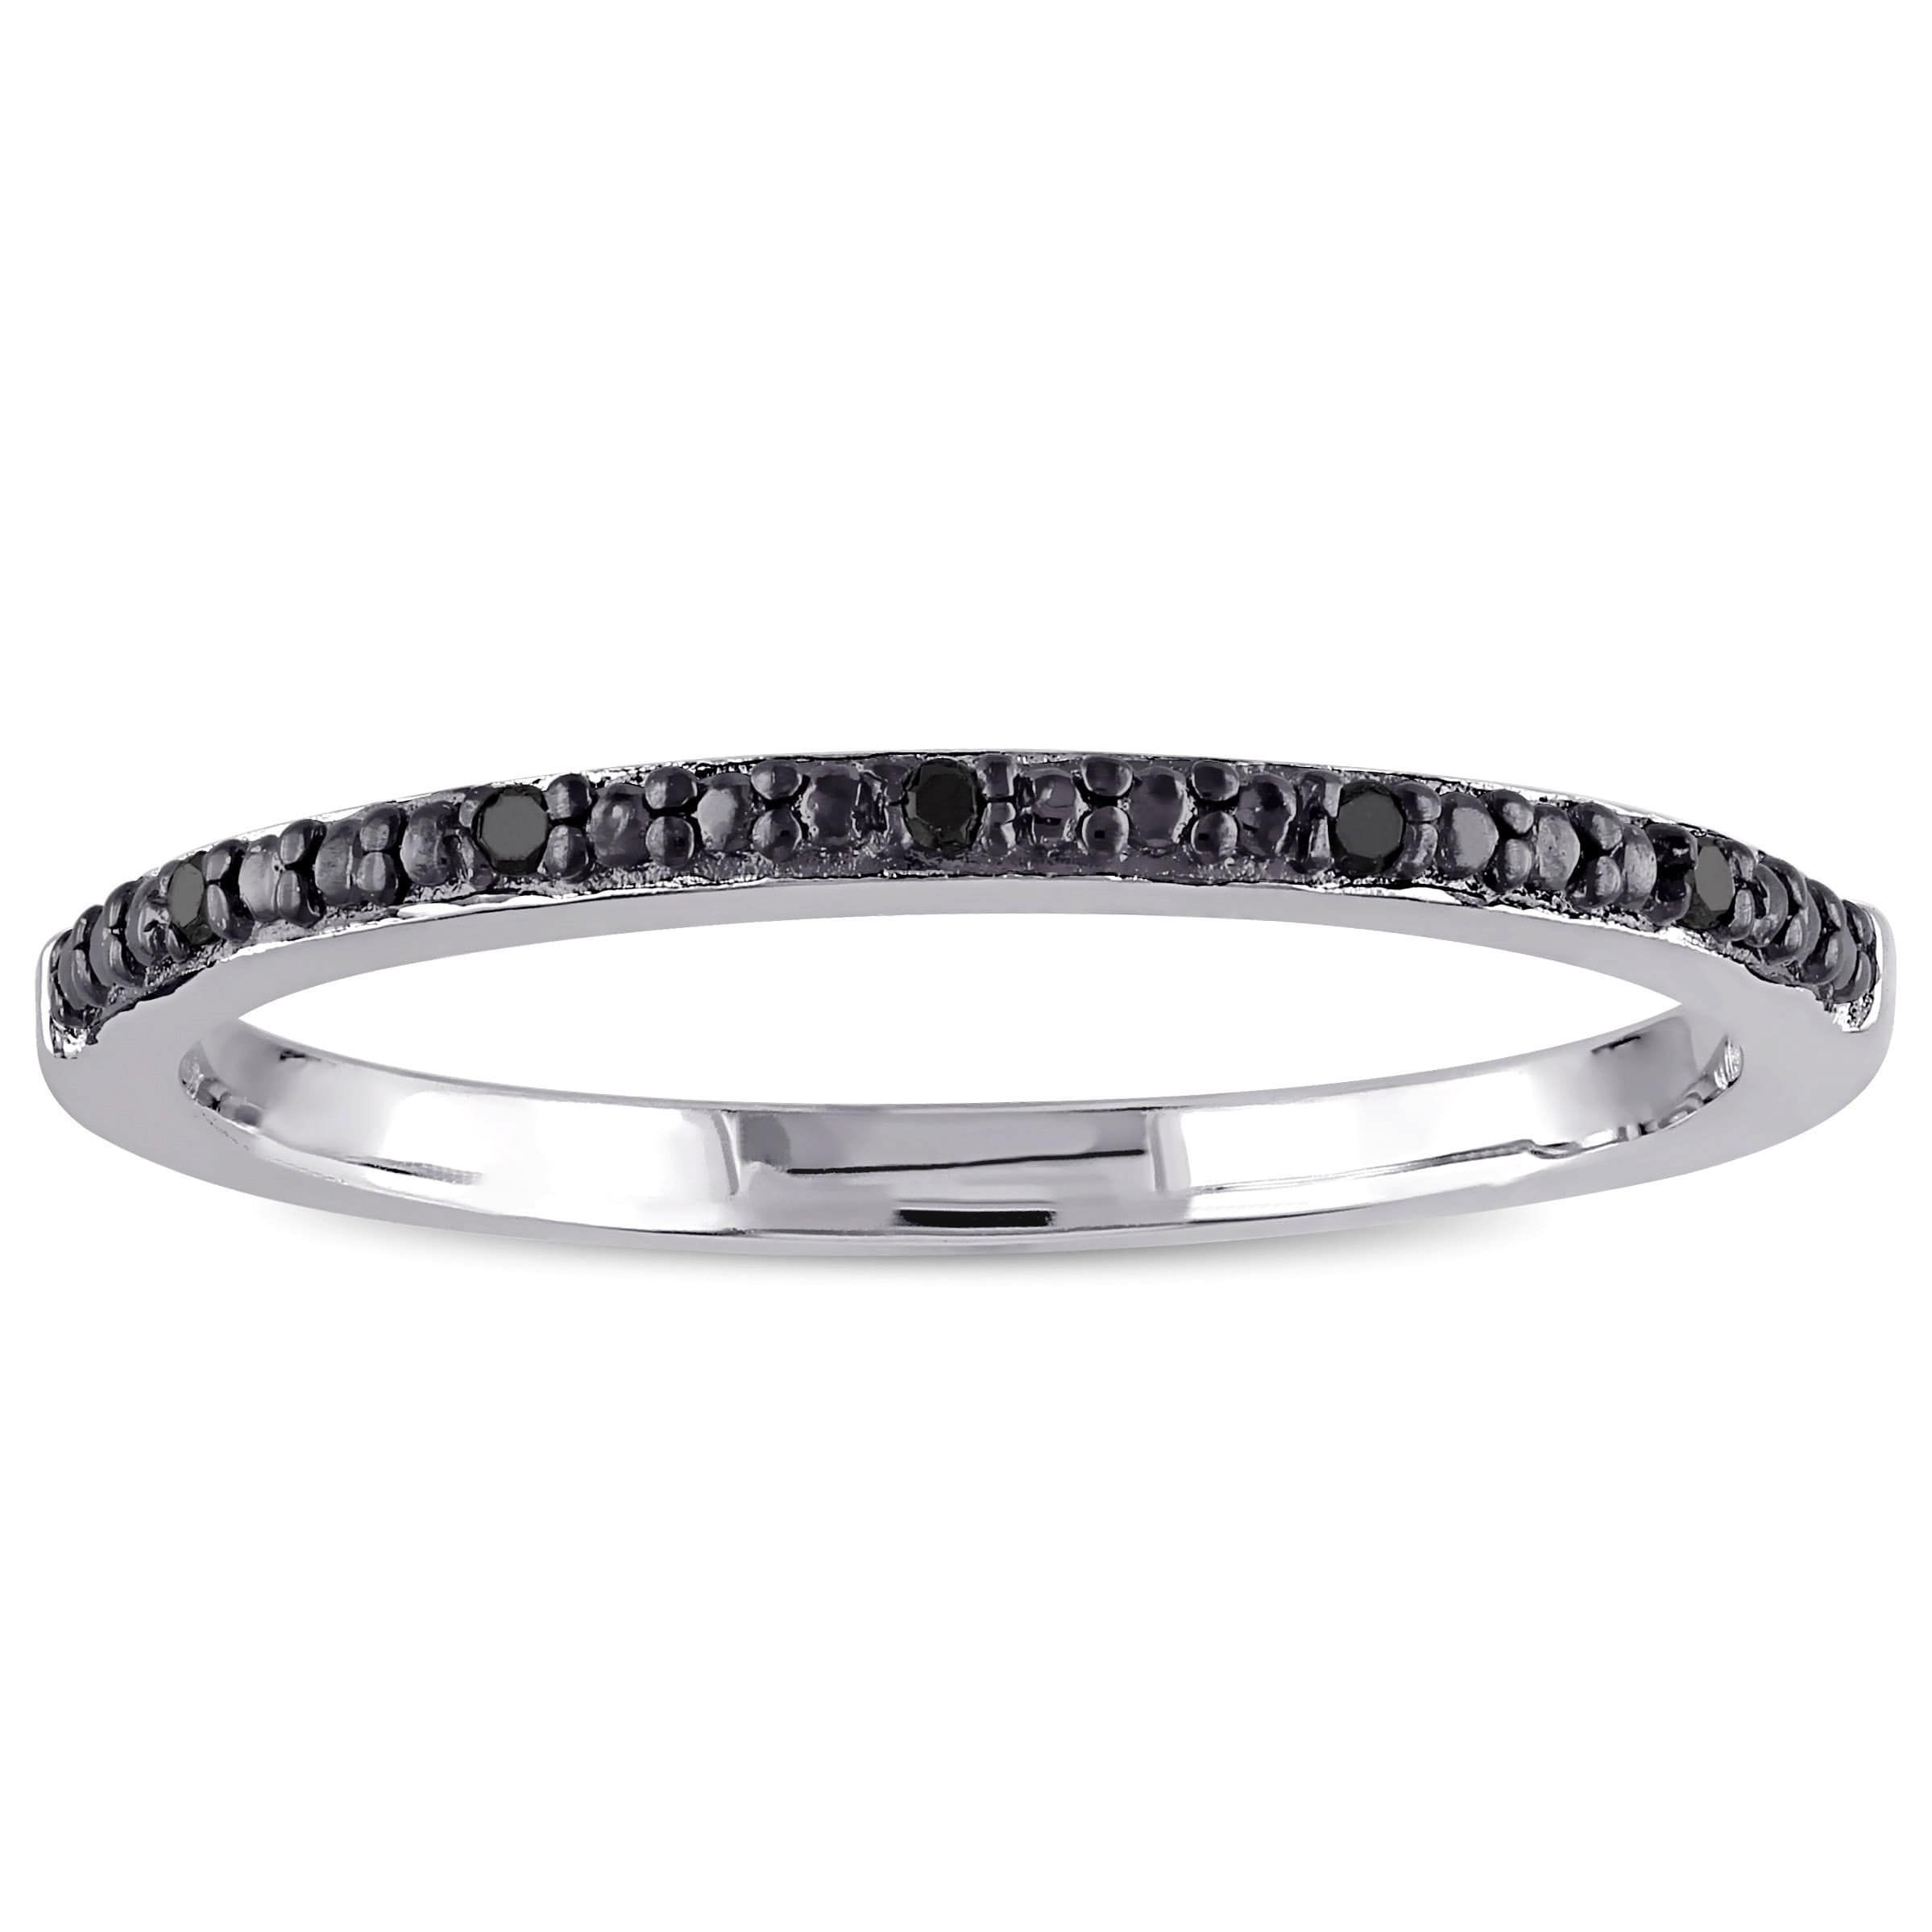 Miadora Sterling Silver Black Diamond Accent Wedding Band Intended For Most Popular Diamond Accent Anniversary Bands In Sterling Silver (Gallery 11 of 25)